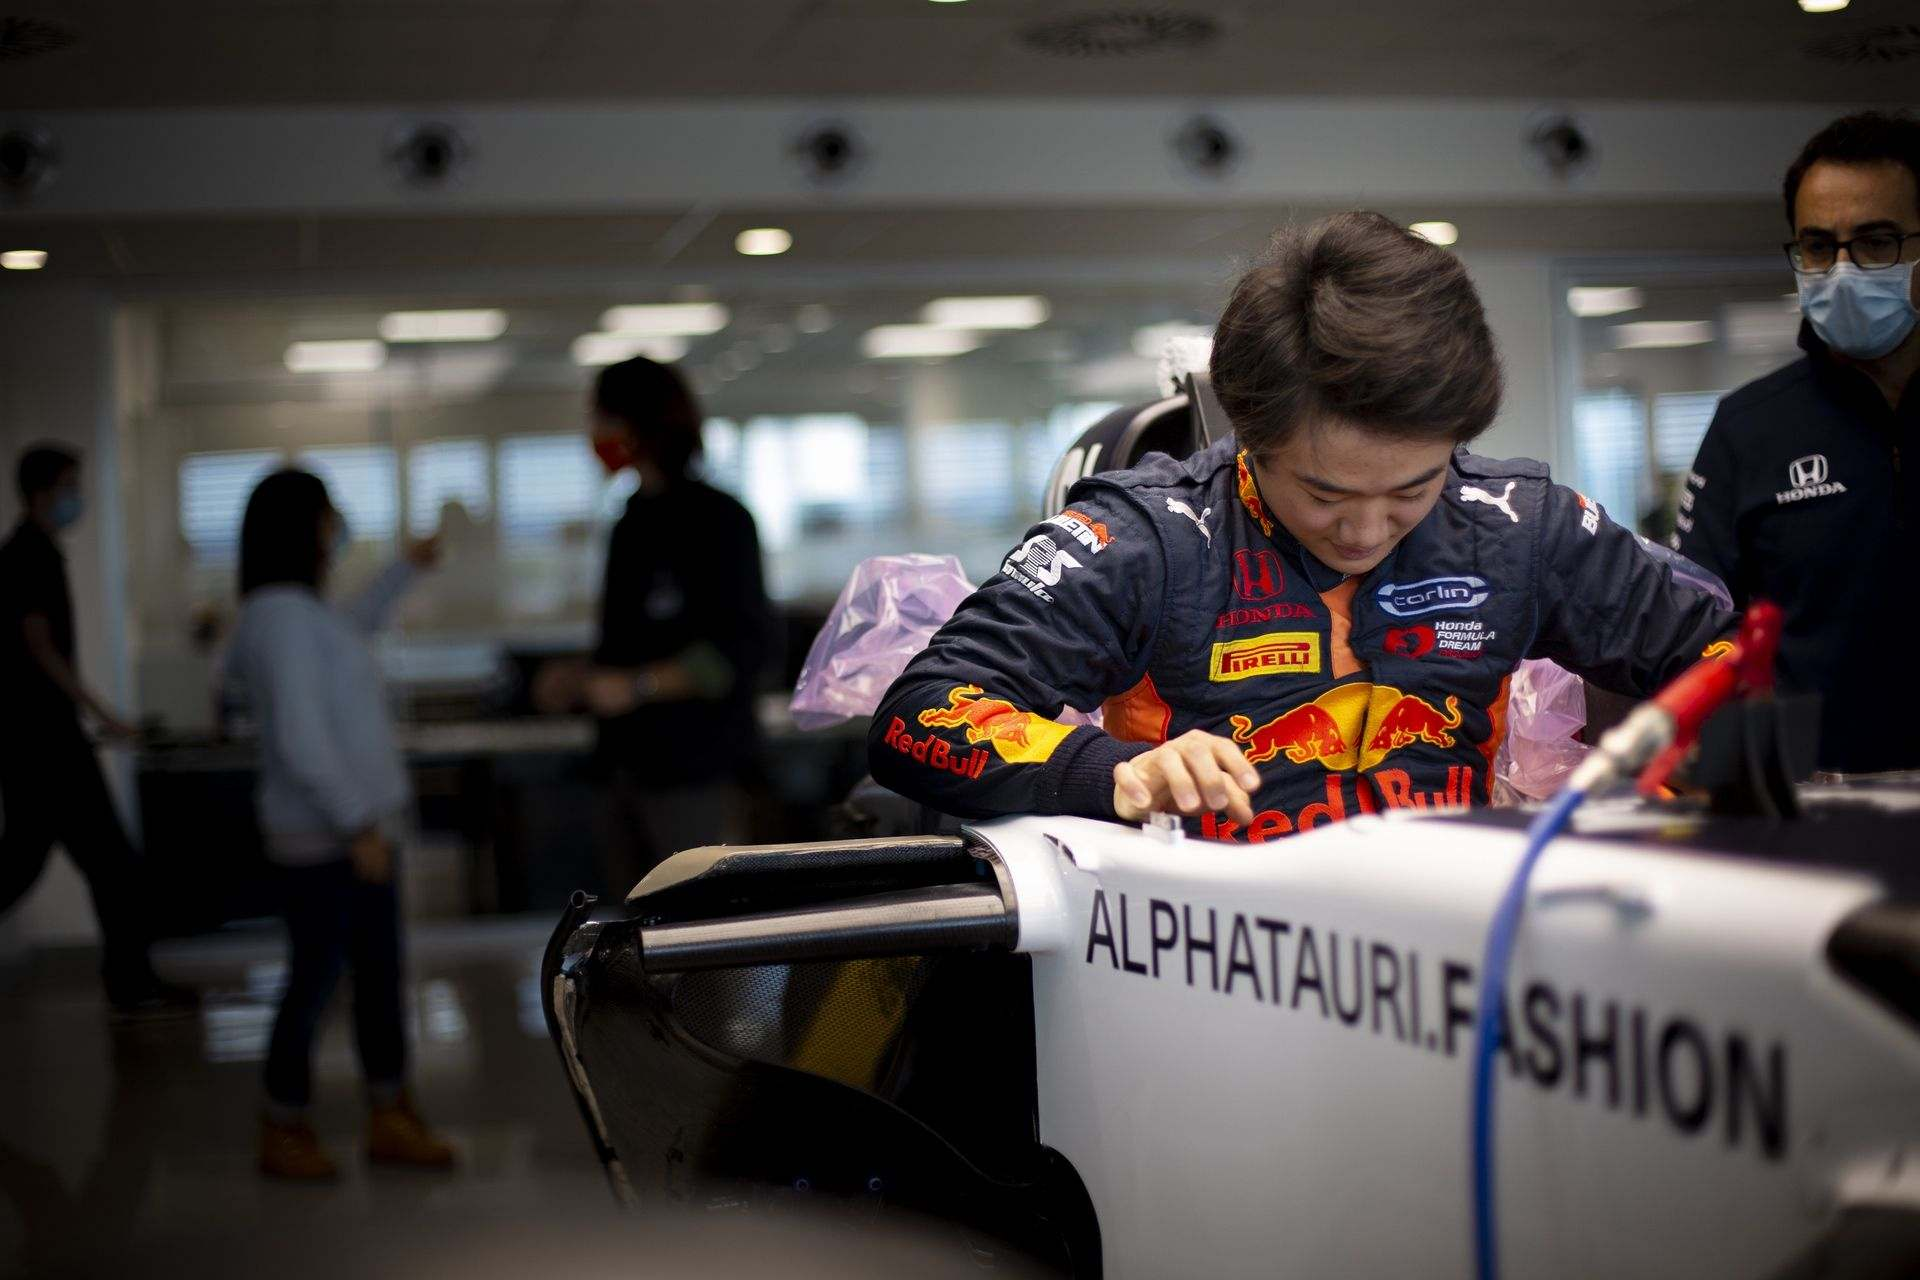 FAENZA, ITALY - OCTOBER 14: Yuki Tsunoda of Japan completes his seat fit at the Scuderia AlphaTauri factory on October 14, 2020 in Faenza, Italy. (Photo by Josh Kruse/Scuderia AlphaTauri) // Josh Kruse / Scuderia AlphaTauri / Red Bull Content Pool // SI202010140209 // Usage for editorial use only //